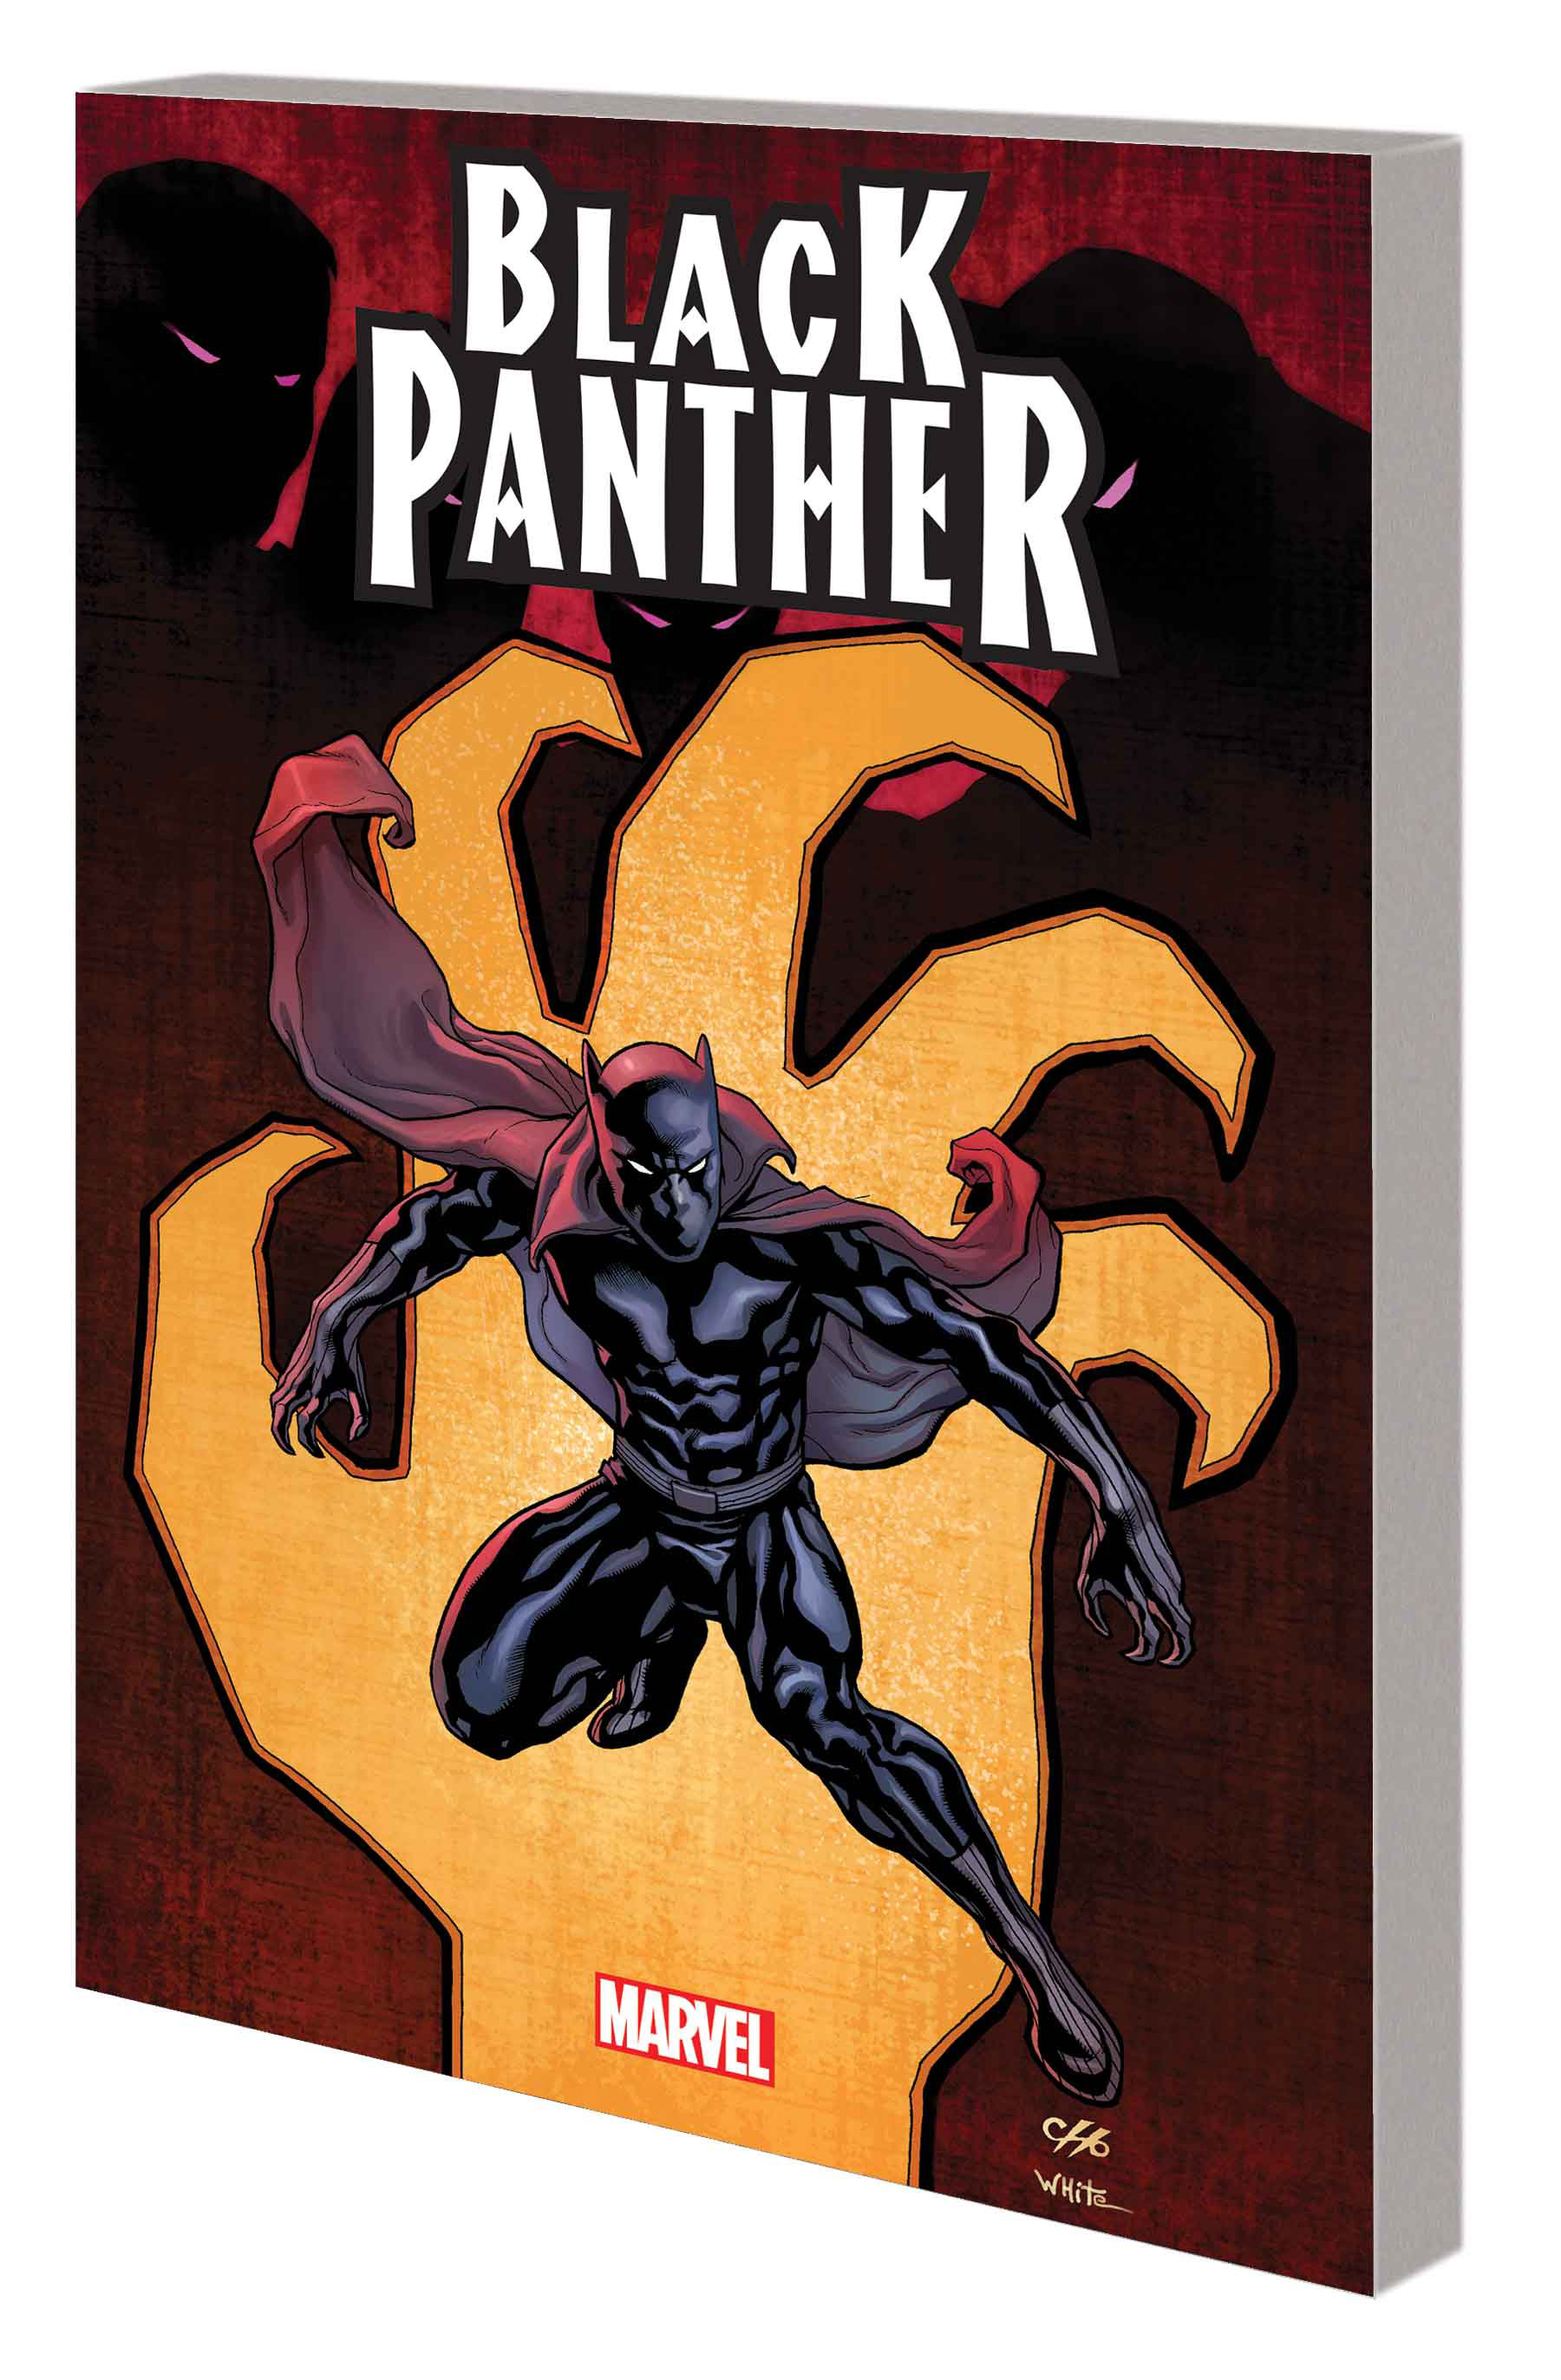 BLACK PANTHER BY REGINALD HUDLIN: THE COMPLETE COLLECTION VOL. 1 TPB